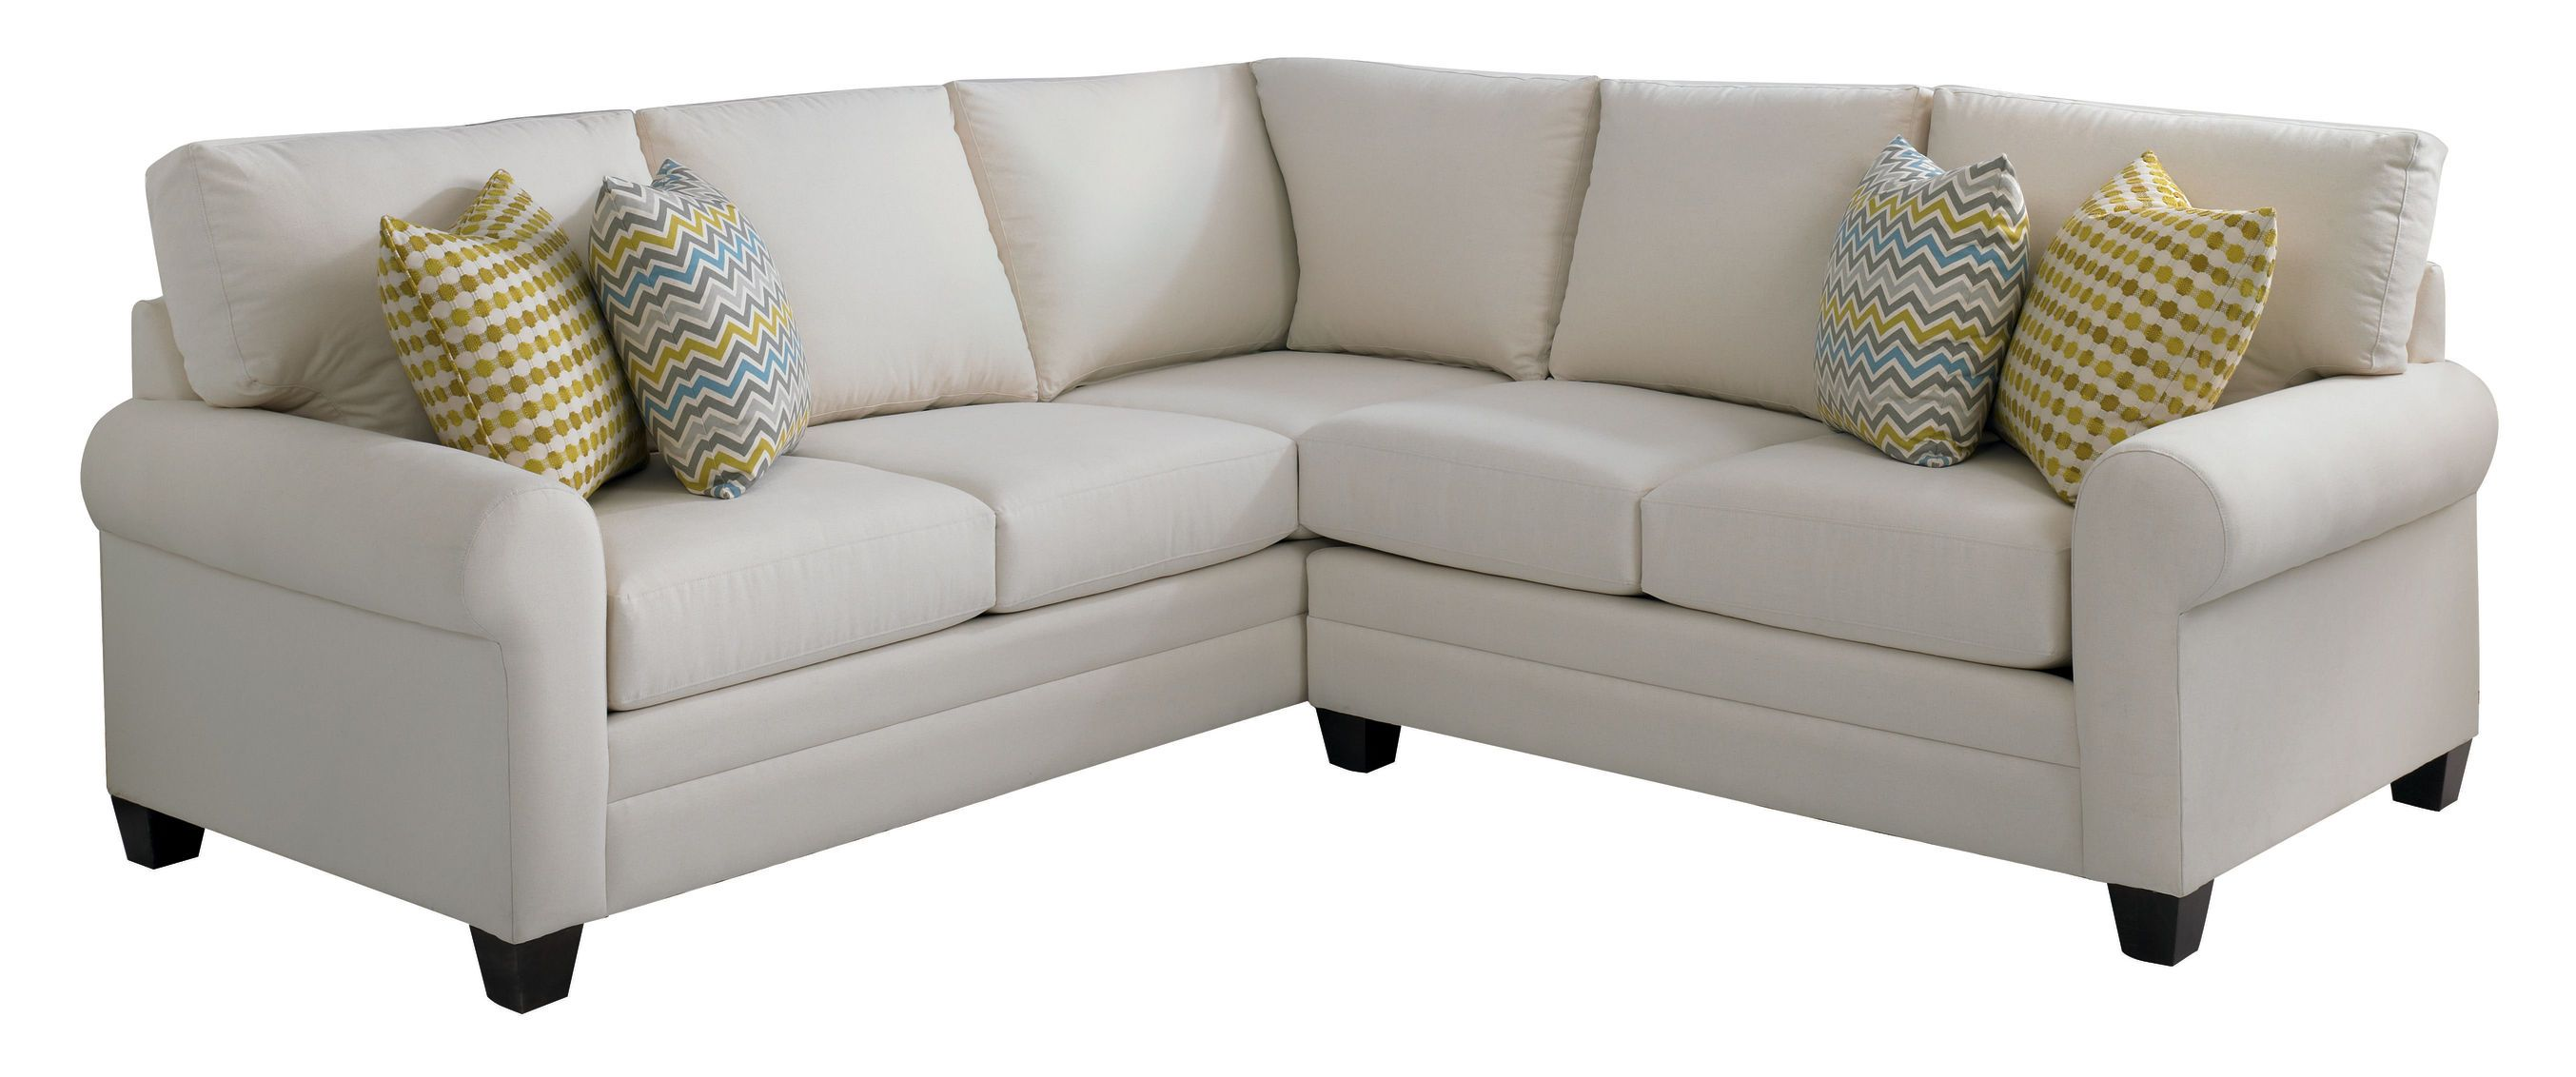 Excellent Your Sectional Couch Can Feature Large Corner Wedges Right Pdpeps Interior Chair Design Pdpepsorg